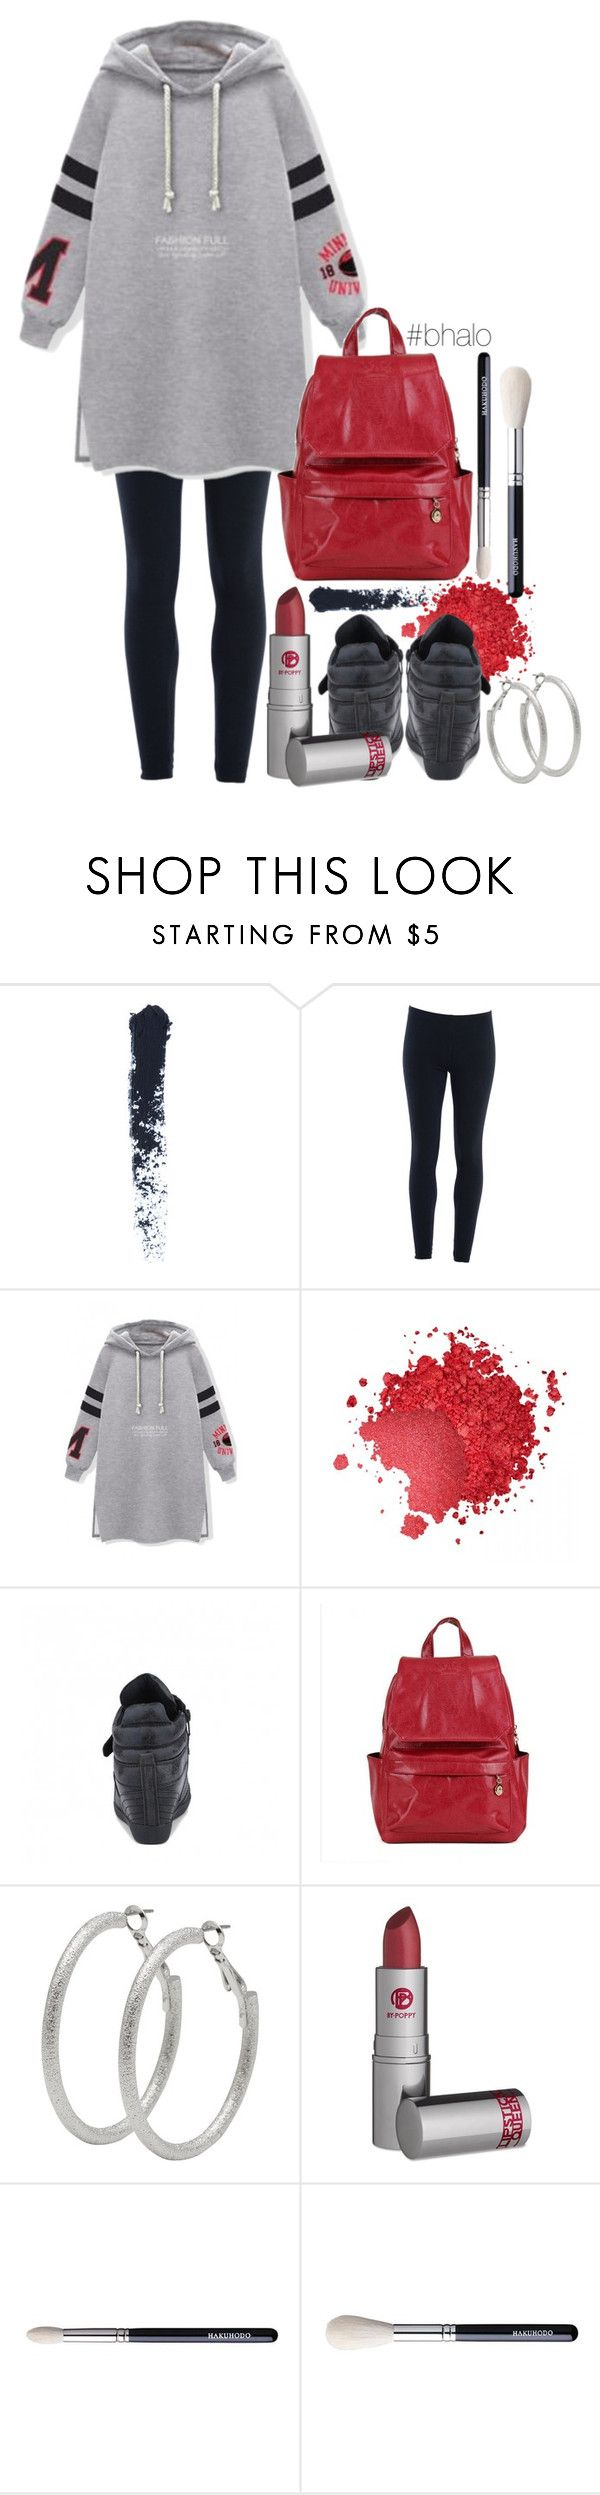 """Sport Hoodie and Leggings"" by itscindylou ❤ liked on Polyvore featuring moda, Too Faced Cosmetics, M&Co, Lipstick Queen y bhalo"